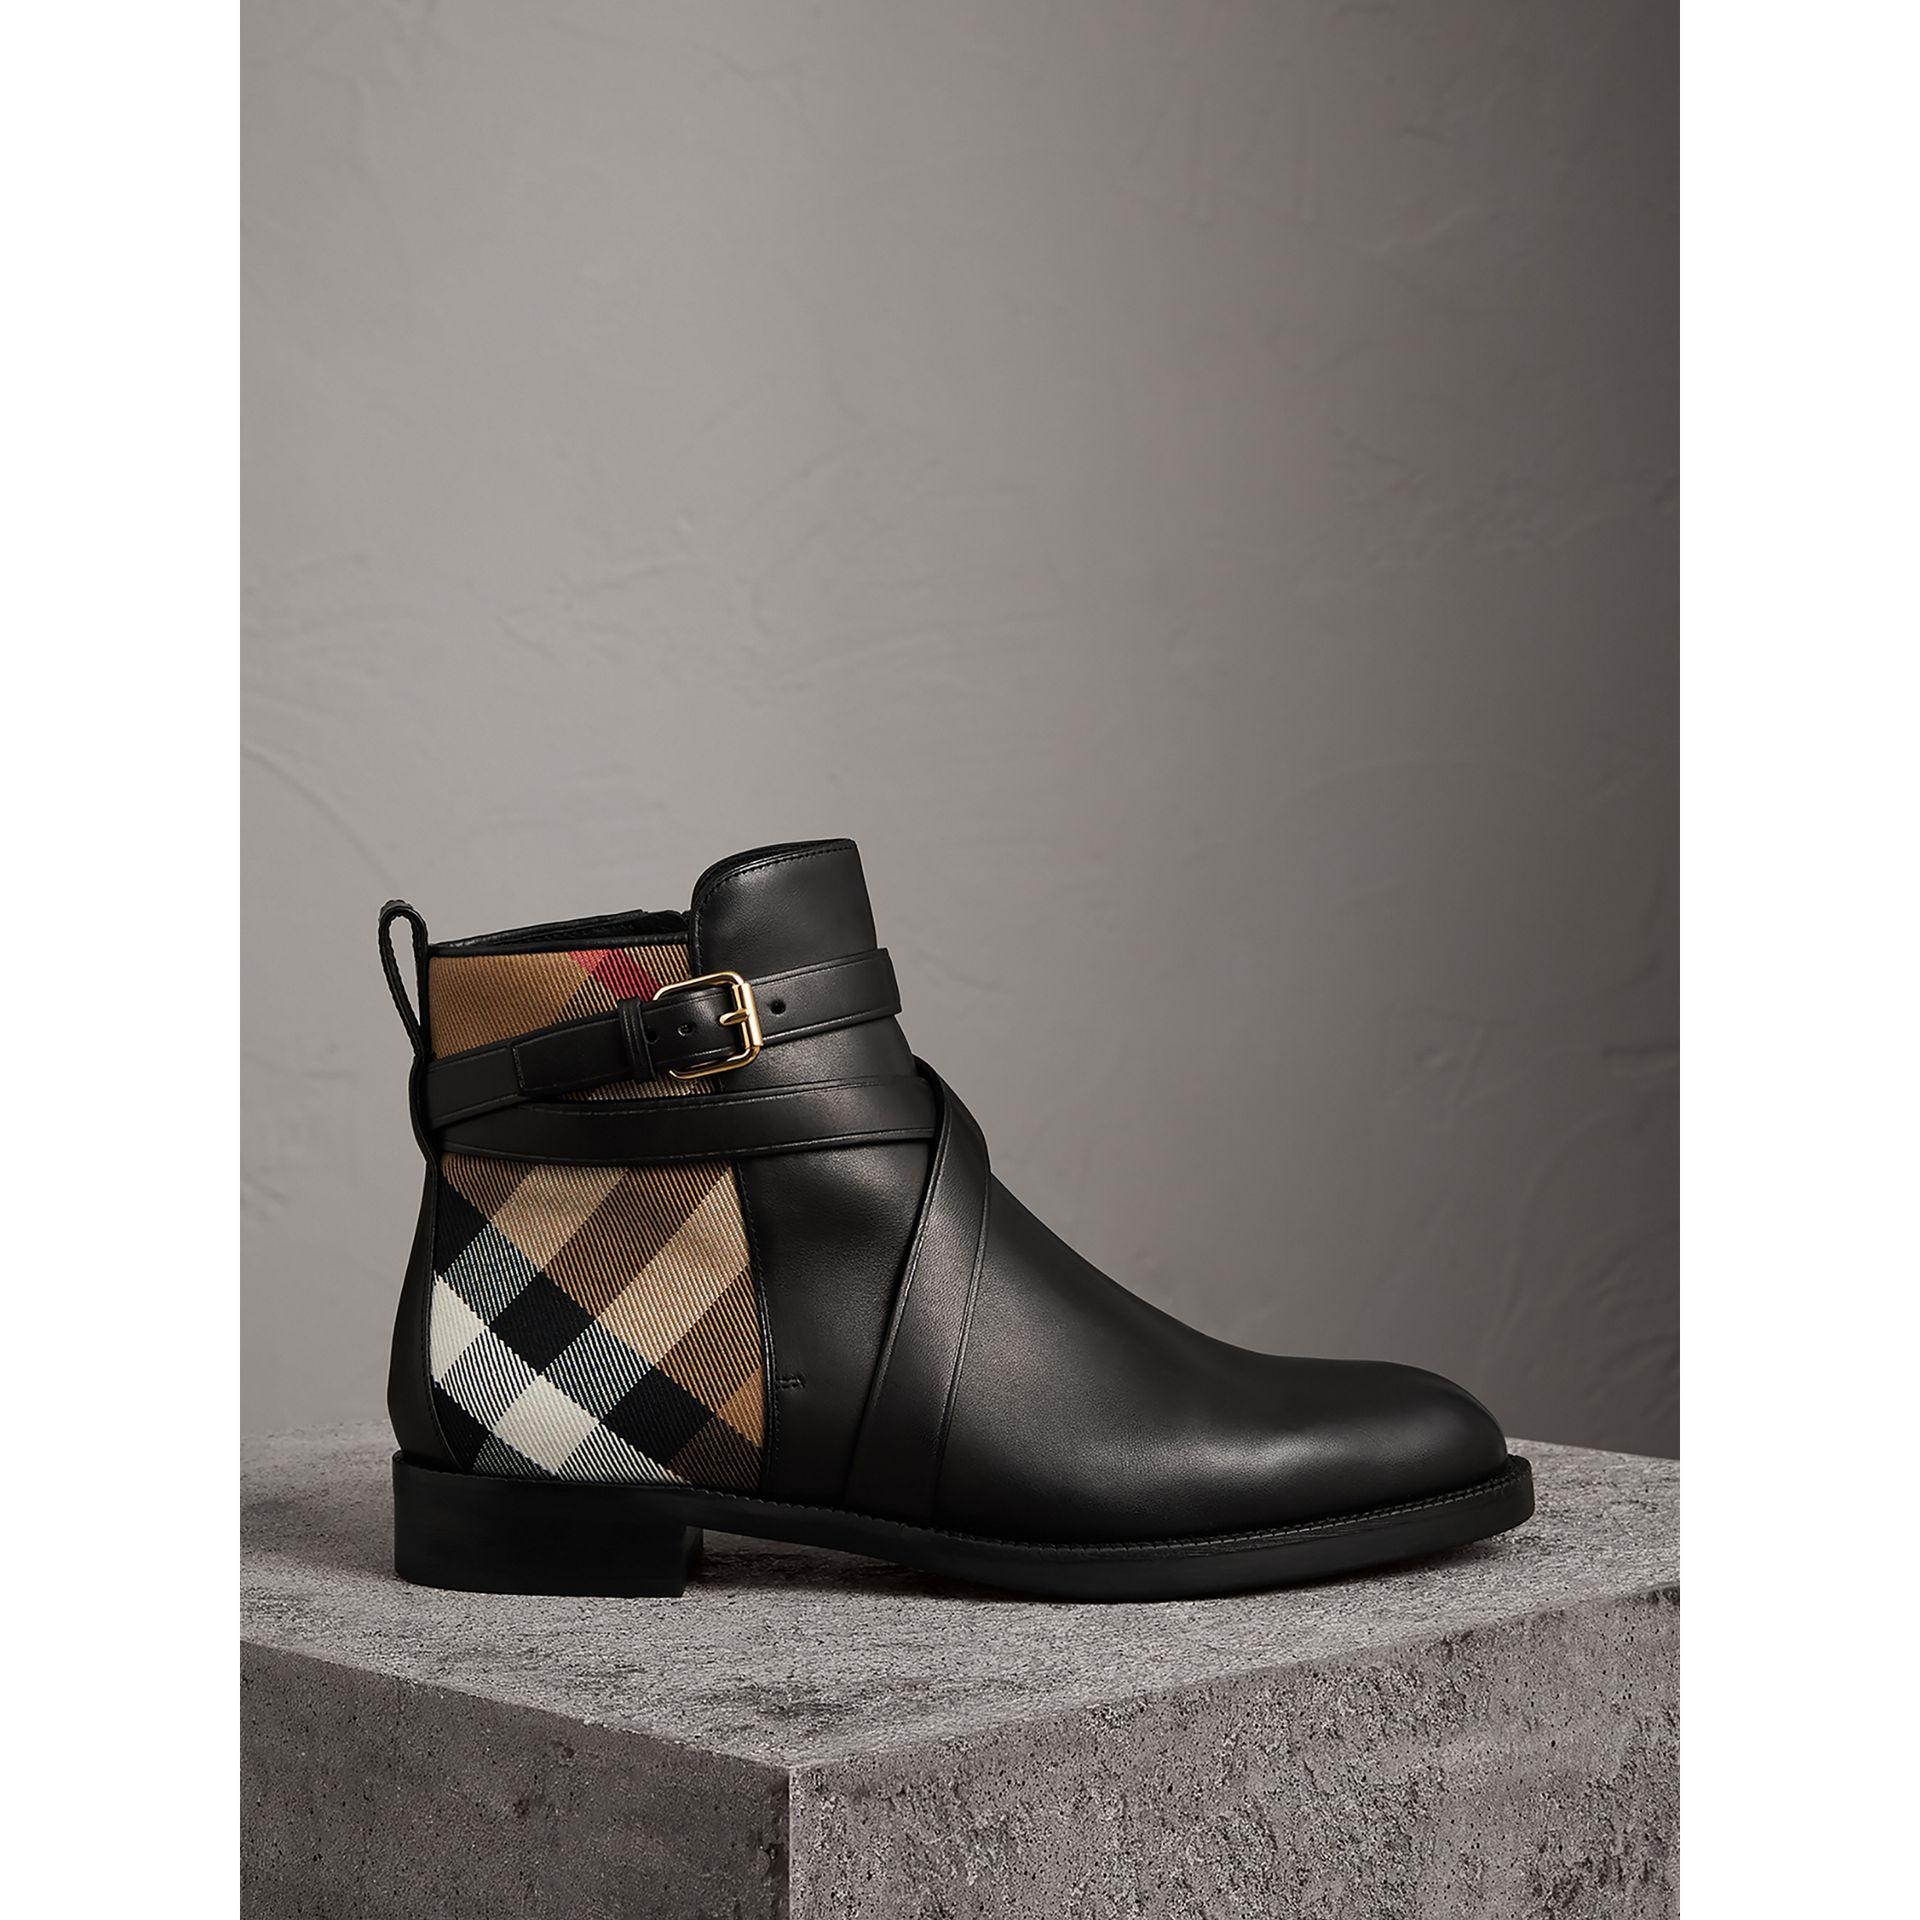 Burberry Strap Detail House Check and Leather Ankle Boots 77DIQ0jsj6